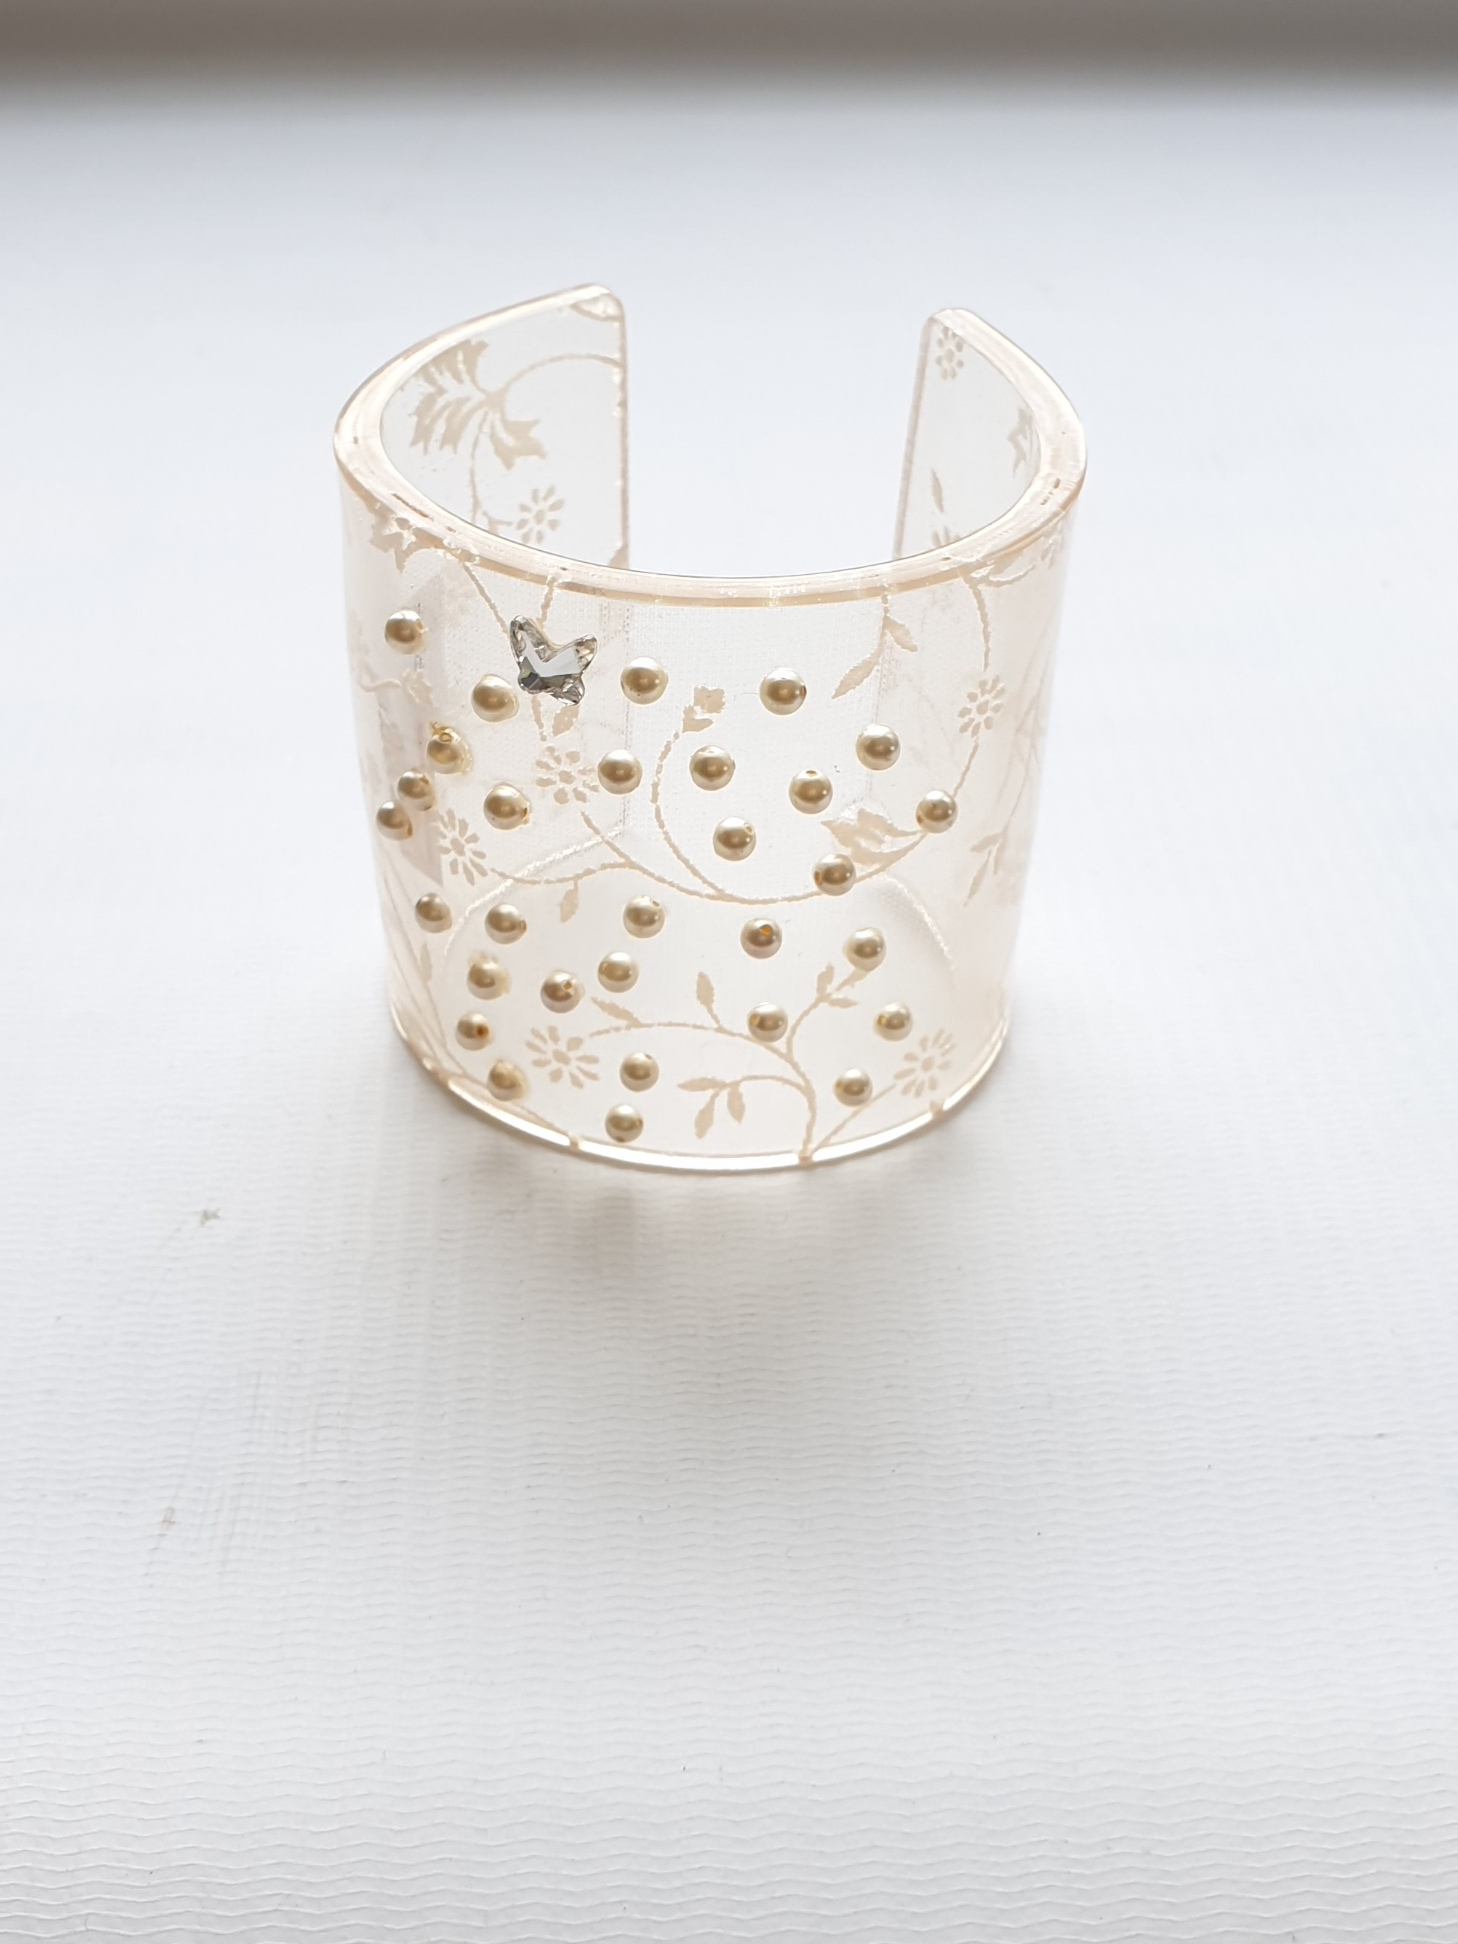 cuff resin/swarovski/pearls